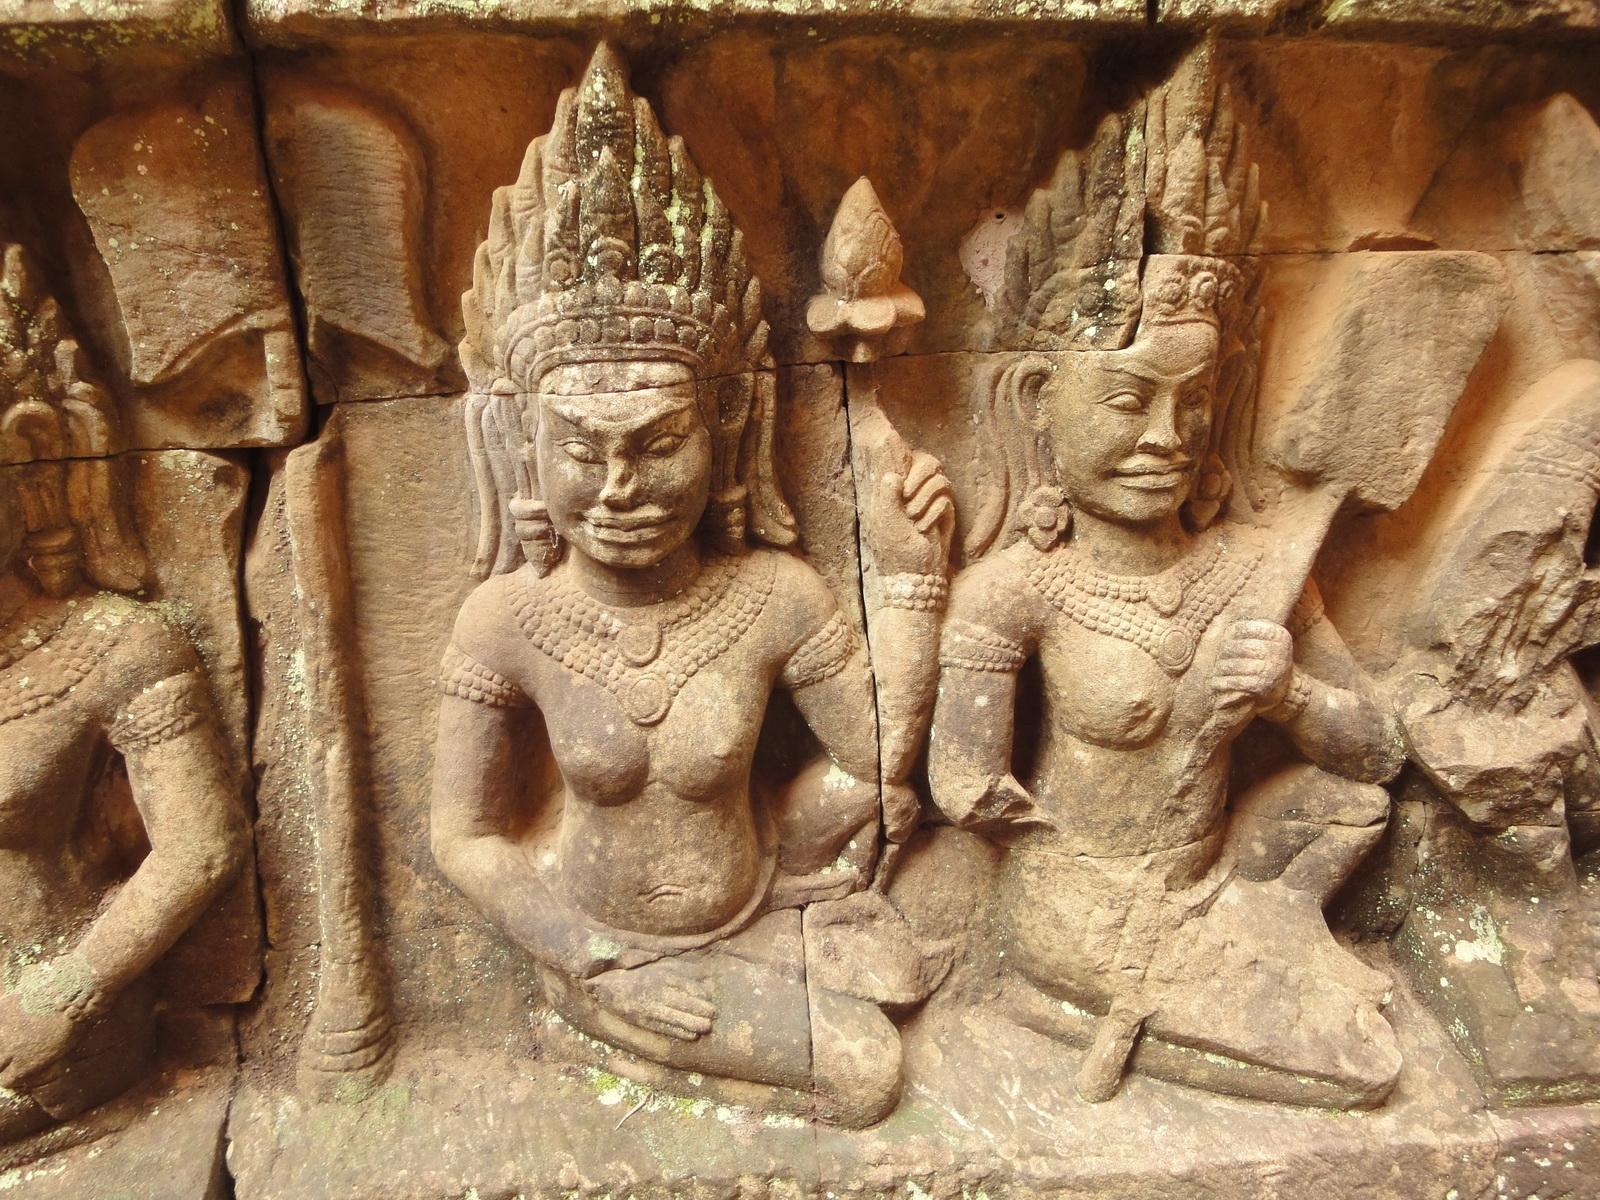 Leper King Terrace hidden wall underworld Nagas and deities 127